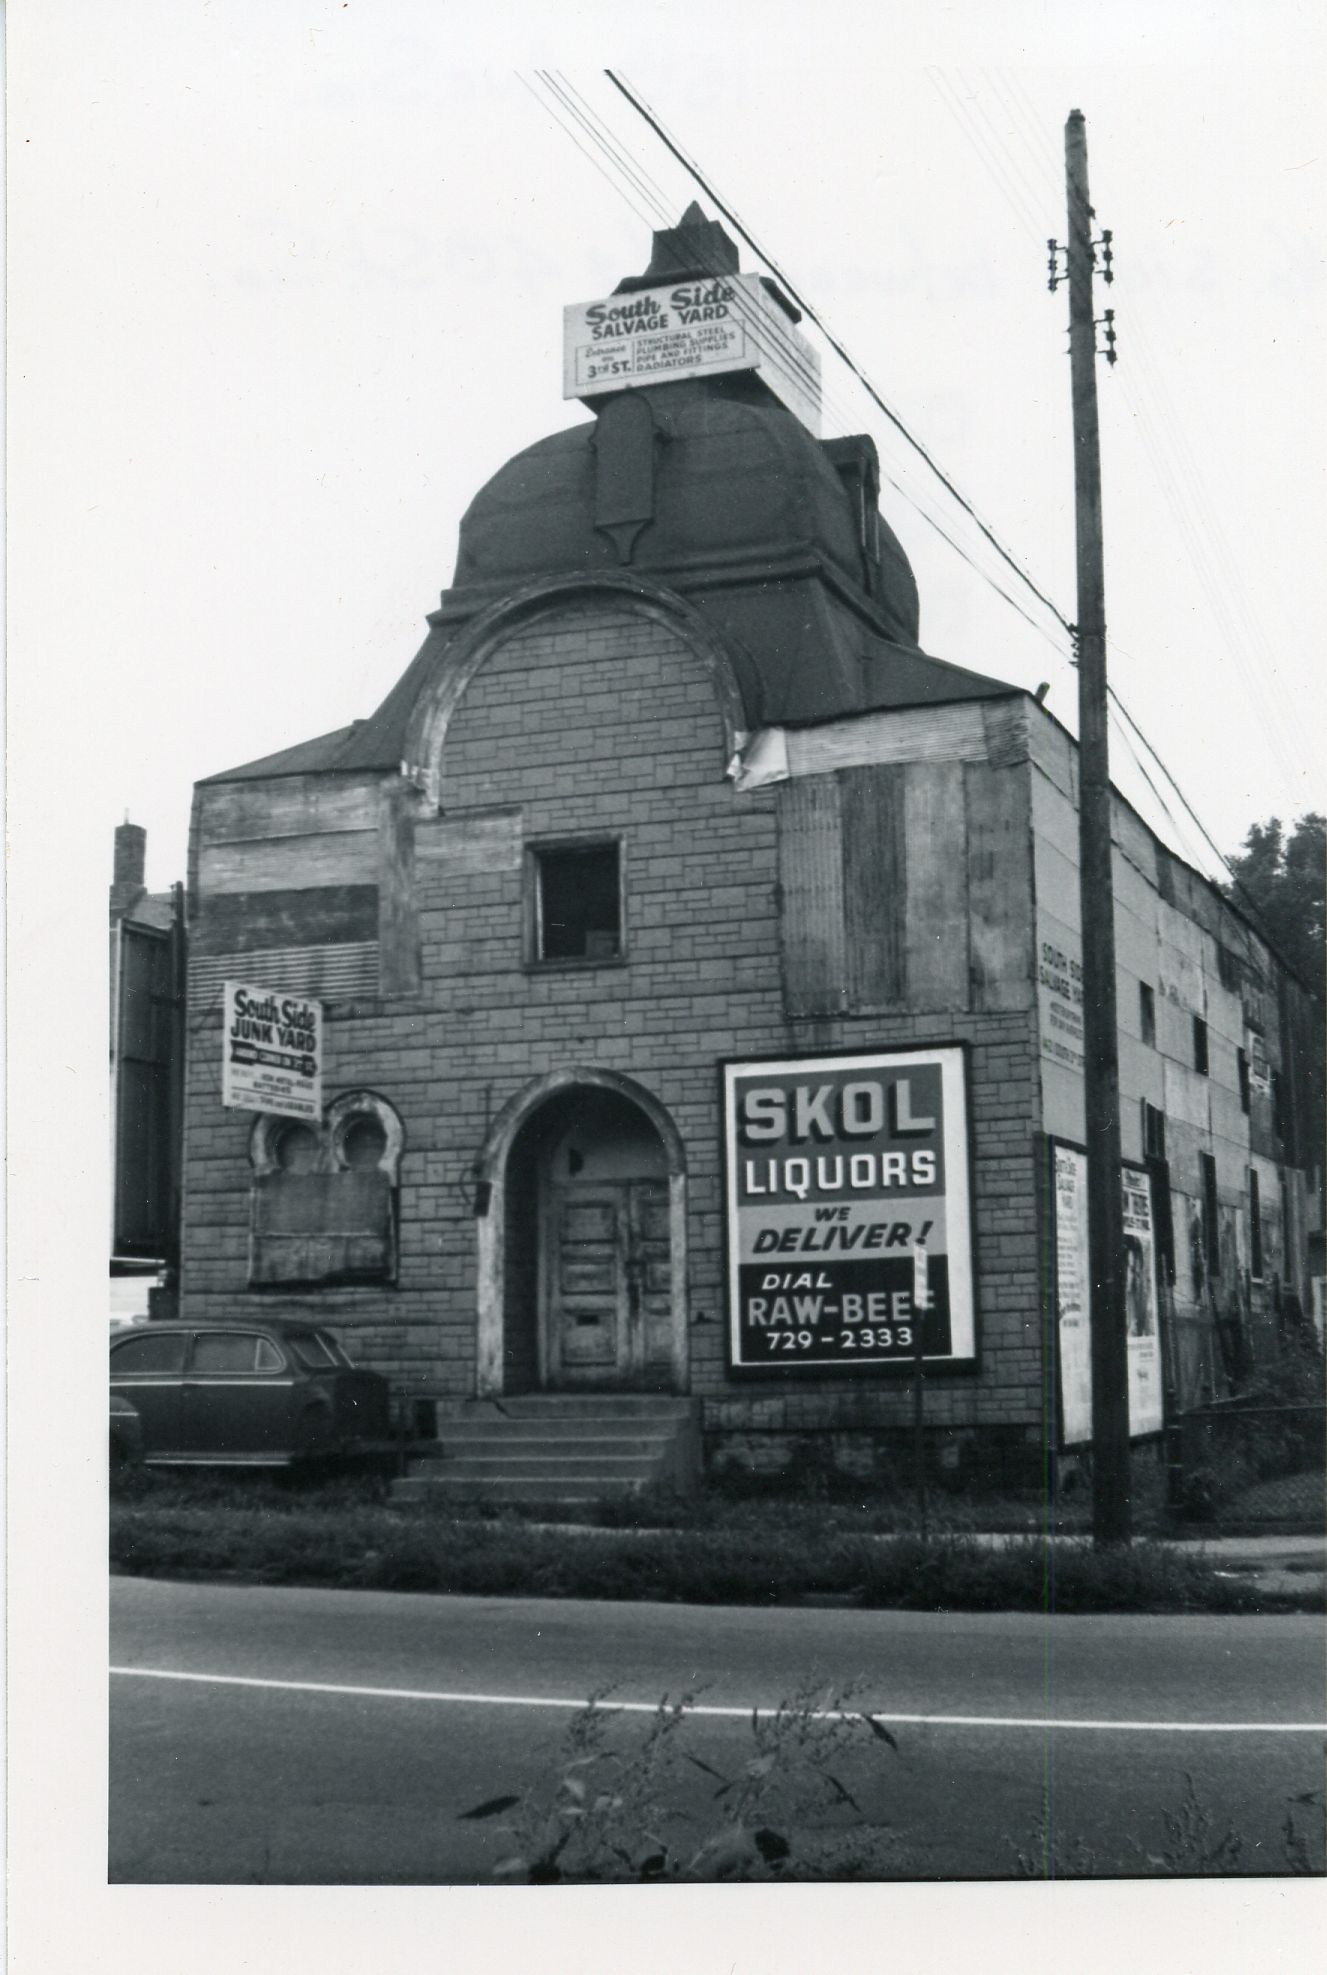 Skol liquors, Cedar Riverside, City Archive, Between 3rd and 4th streets, skol liquor, raw beef